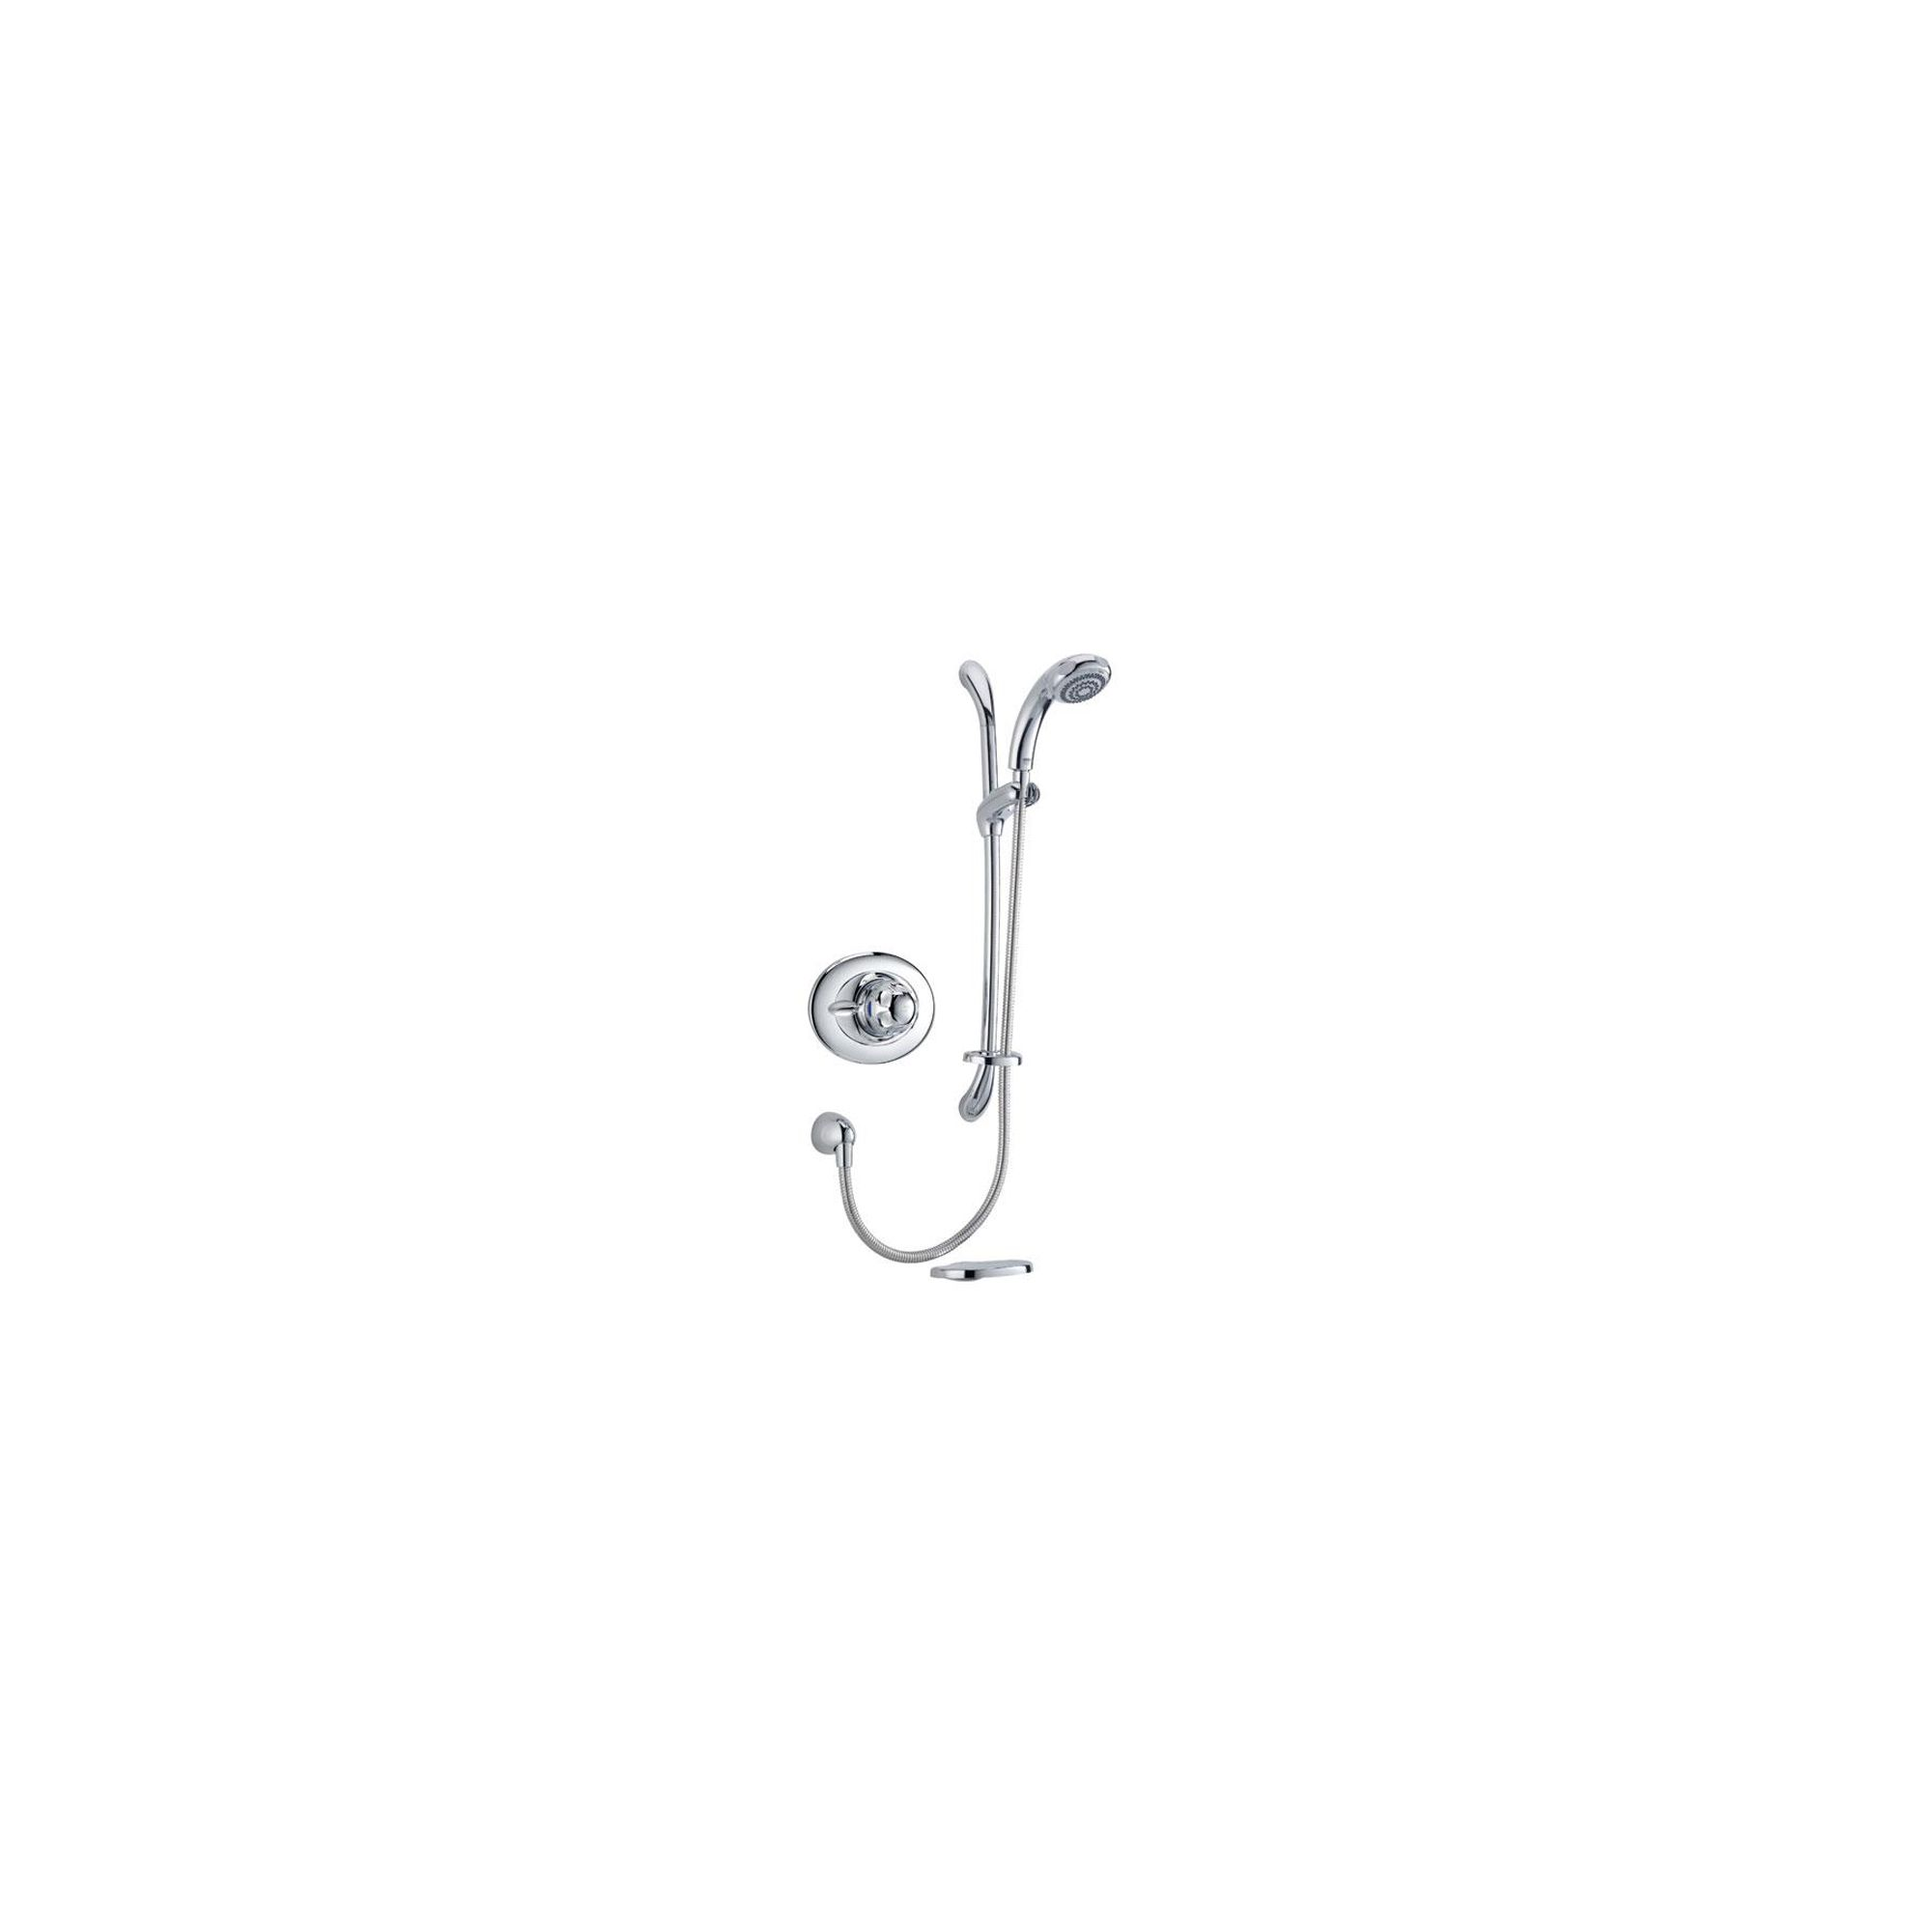 Mira Excel B-BIV Mixer Shower with Kit Chrome at Tesco Direct